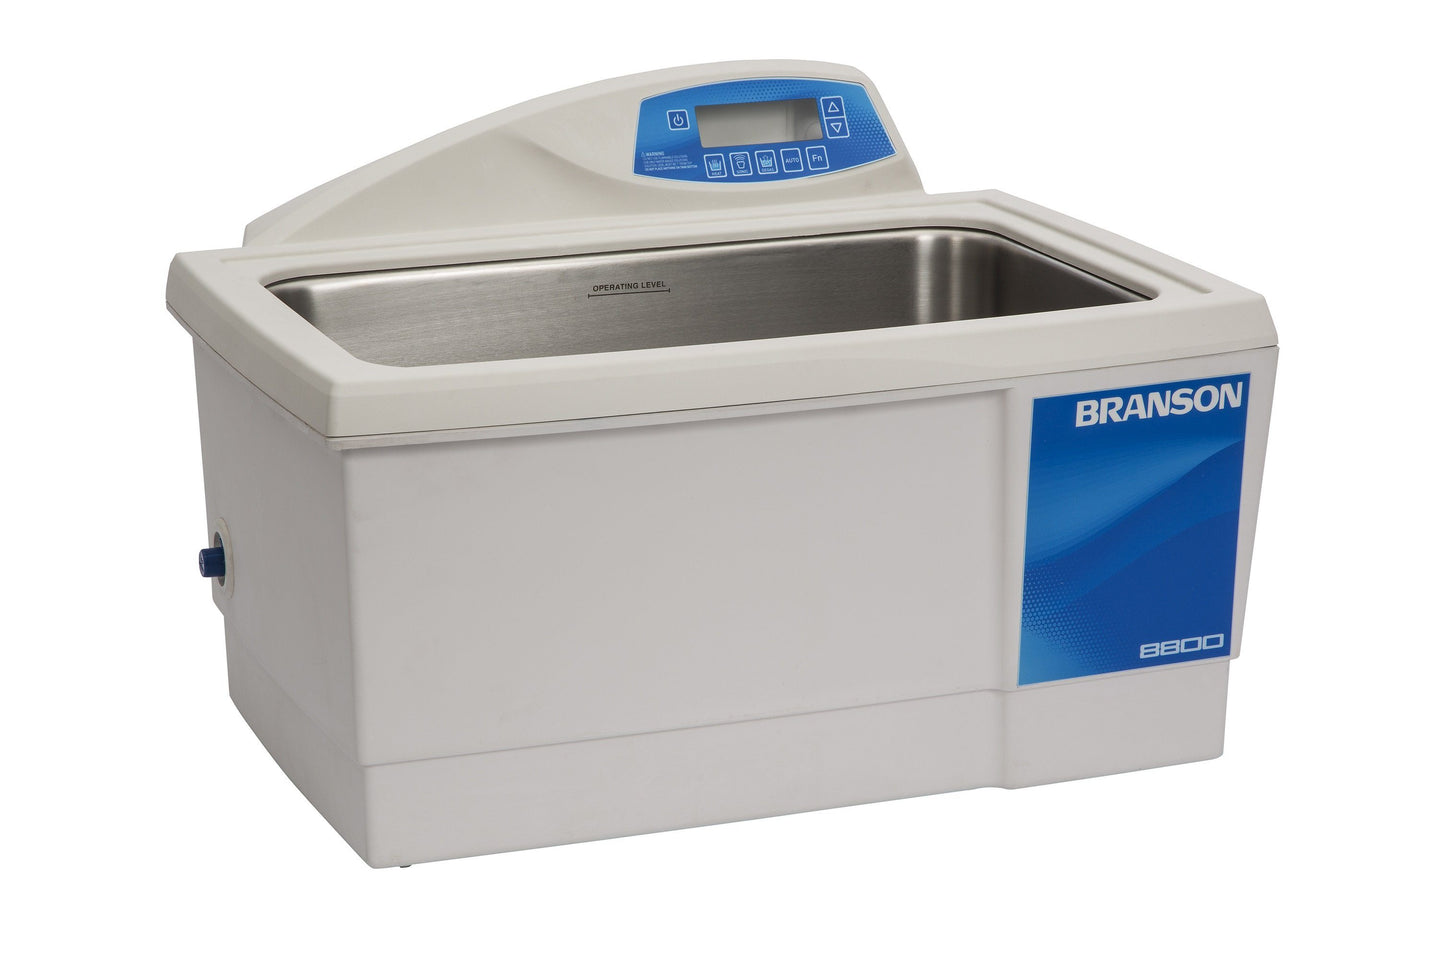 Branson CPX8800H Ultrasonic Cleaner with Digital Timer, Heater & Degas, 5.5 Gallon - leadsonics